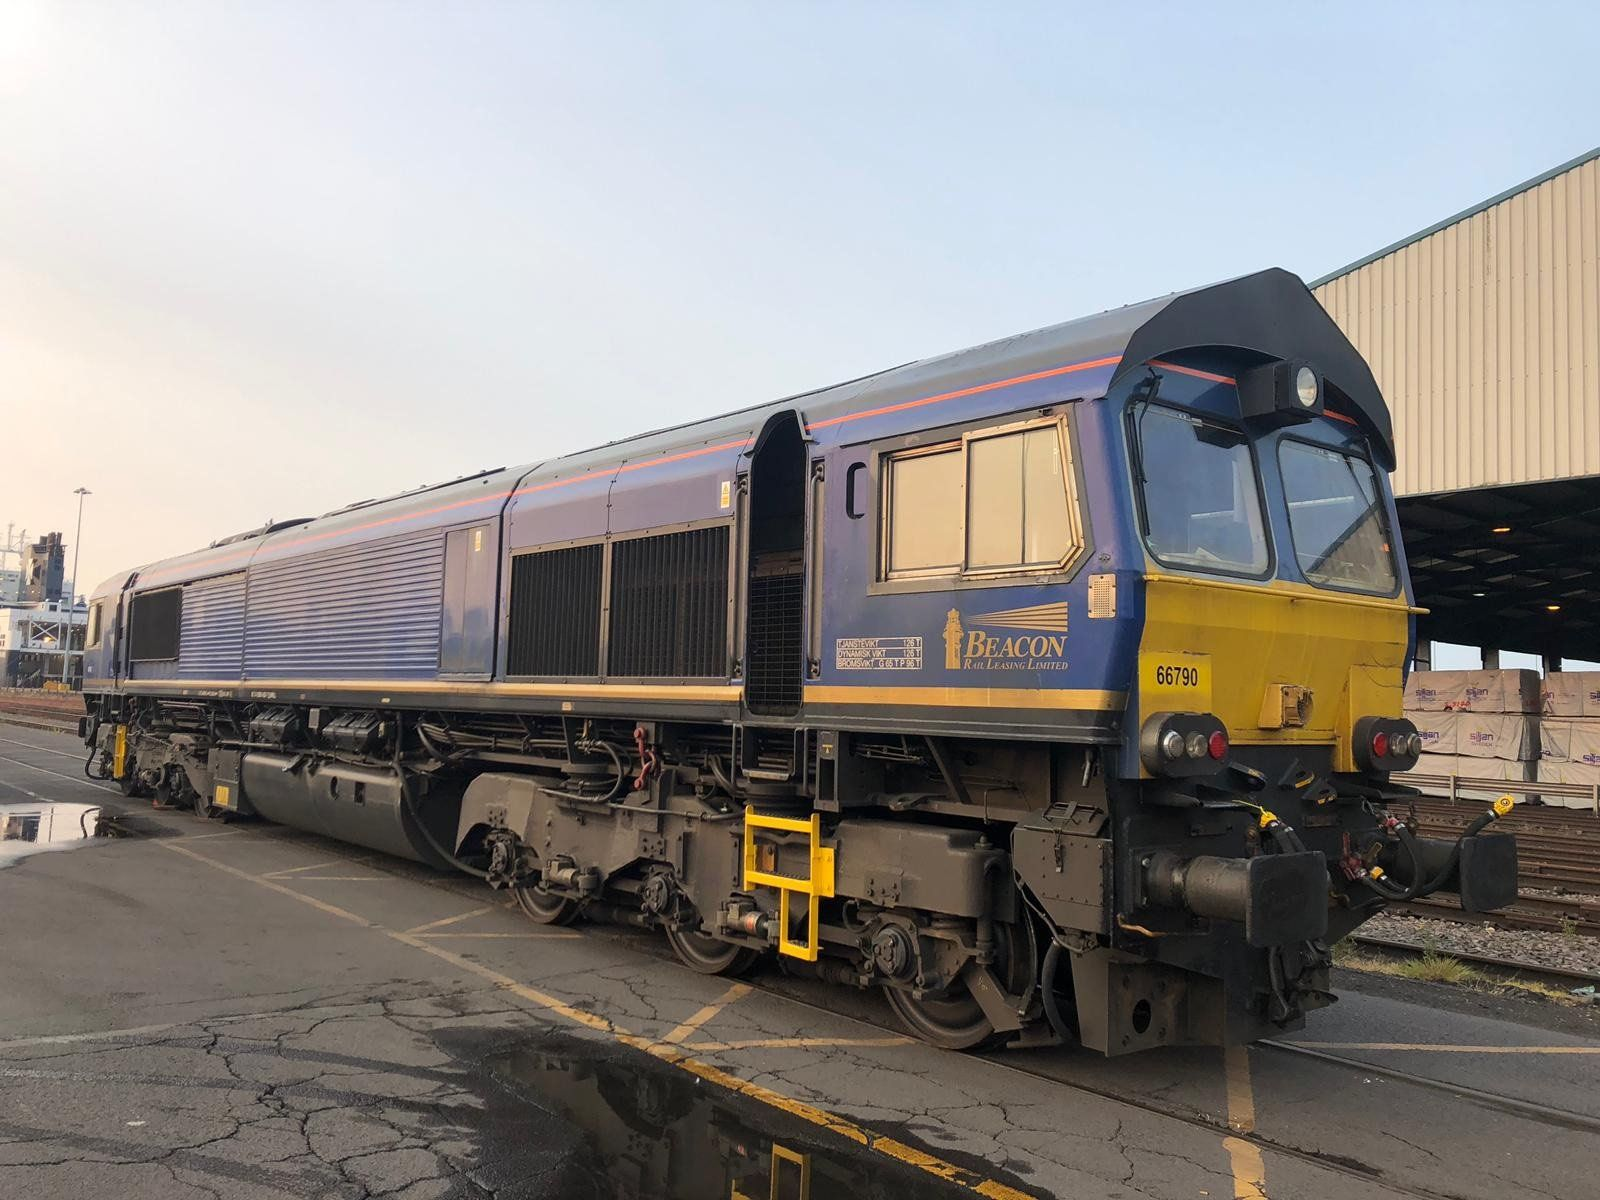 Image showing one of the Class 66 locomotives added to the GBRf fleet